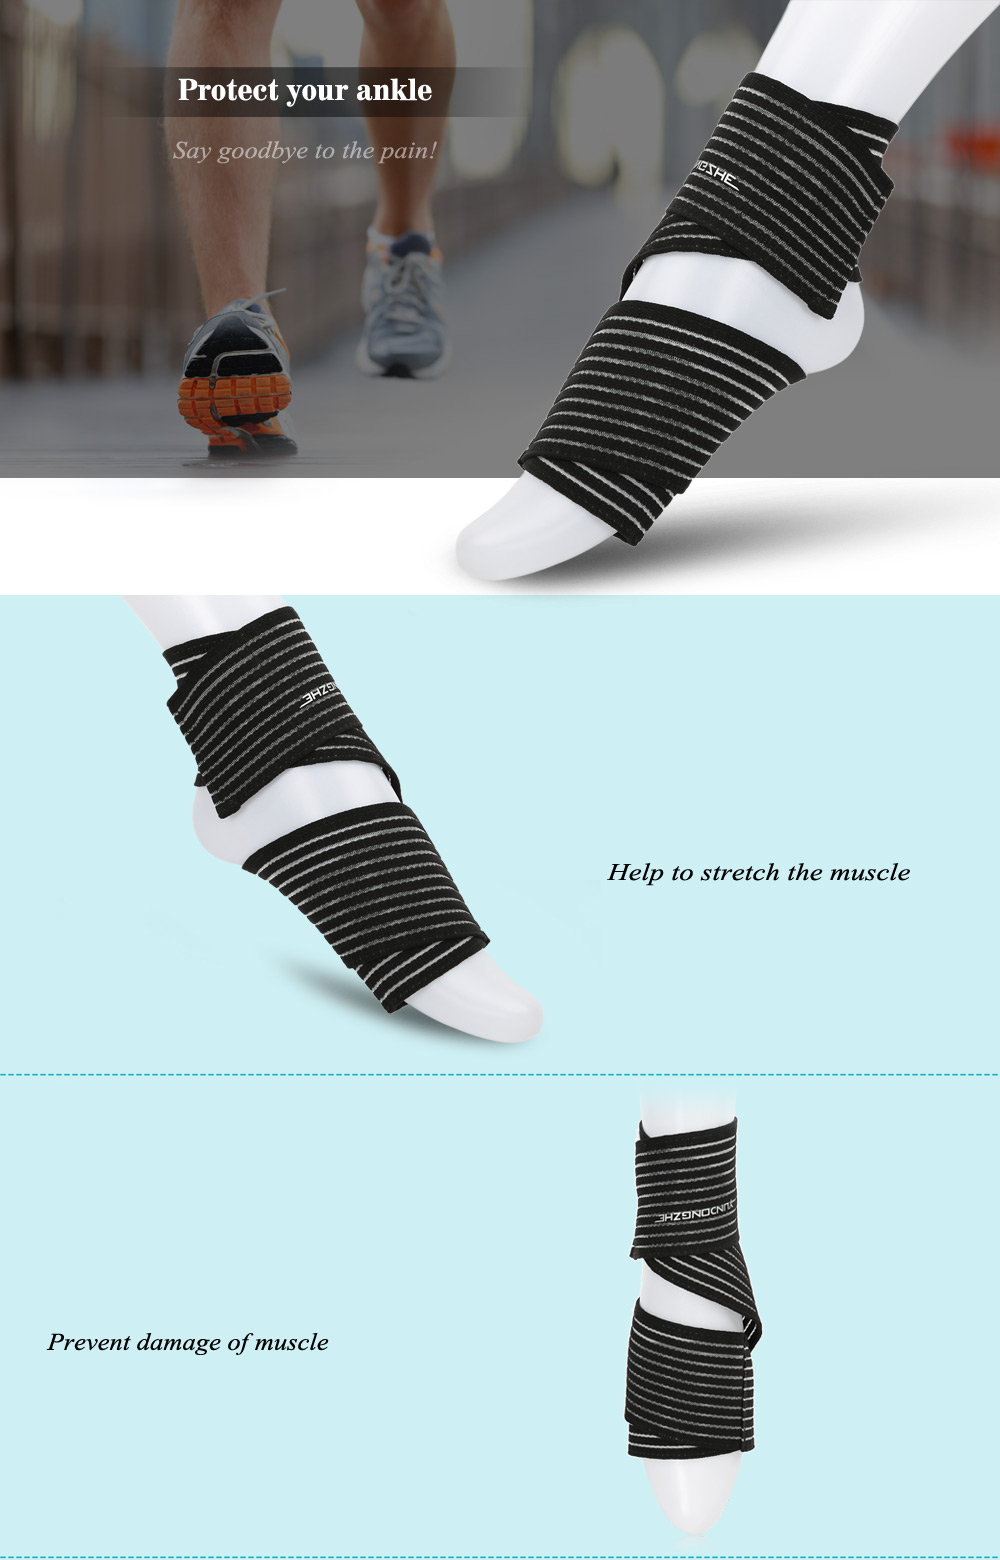 YUNDONGZHE Outdoor Safety Circumvolute Ankle Protector Support for Soccer Football Cycling Running